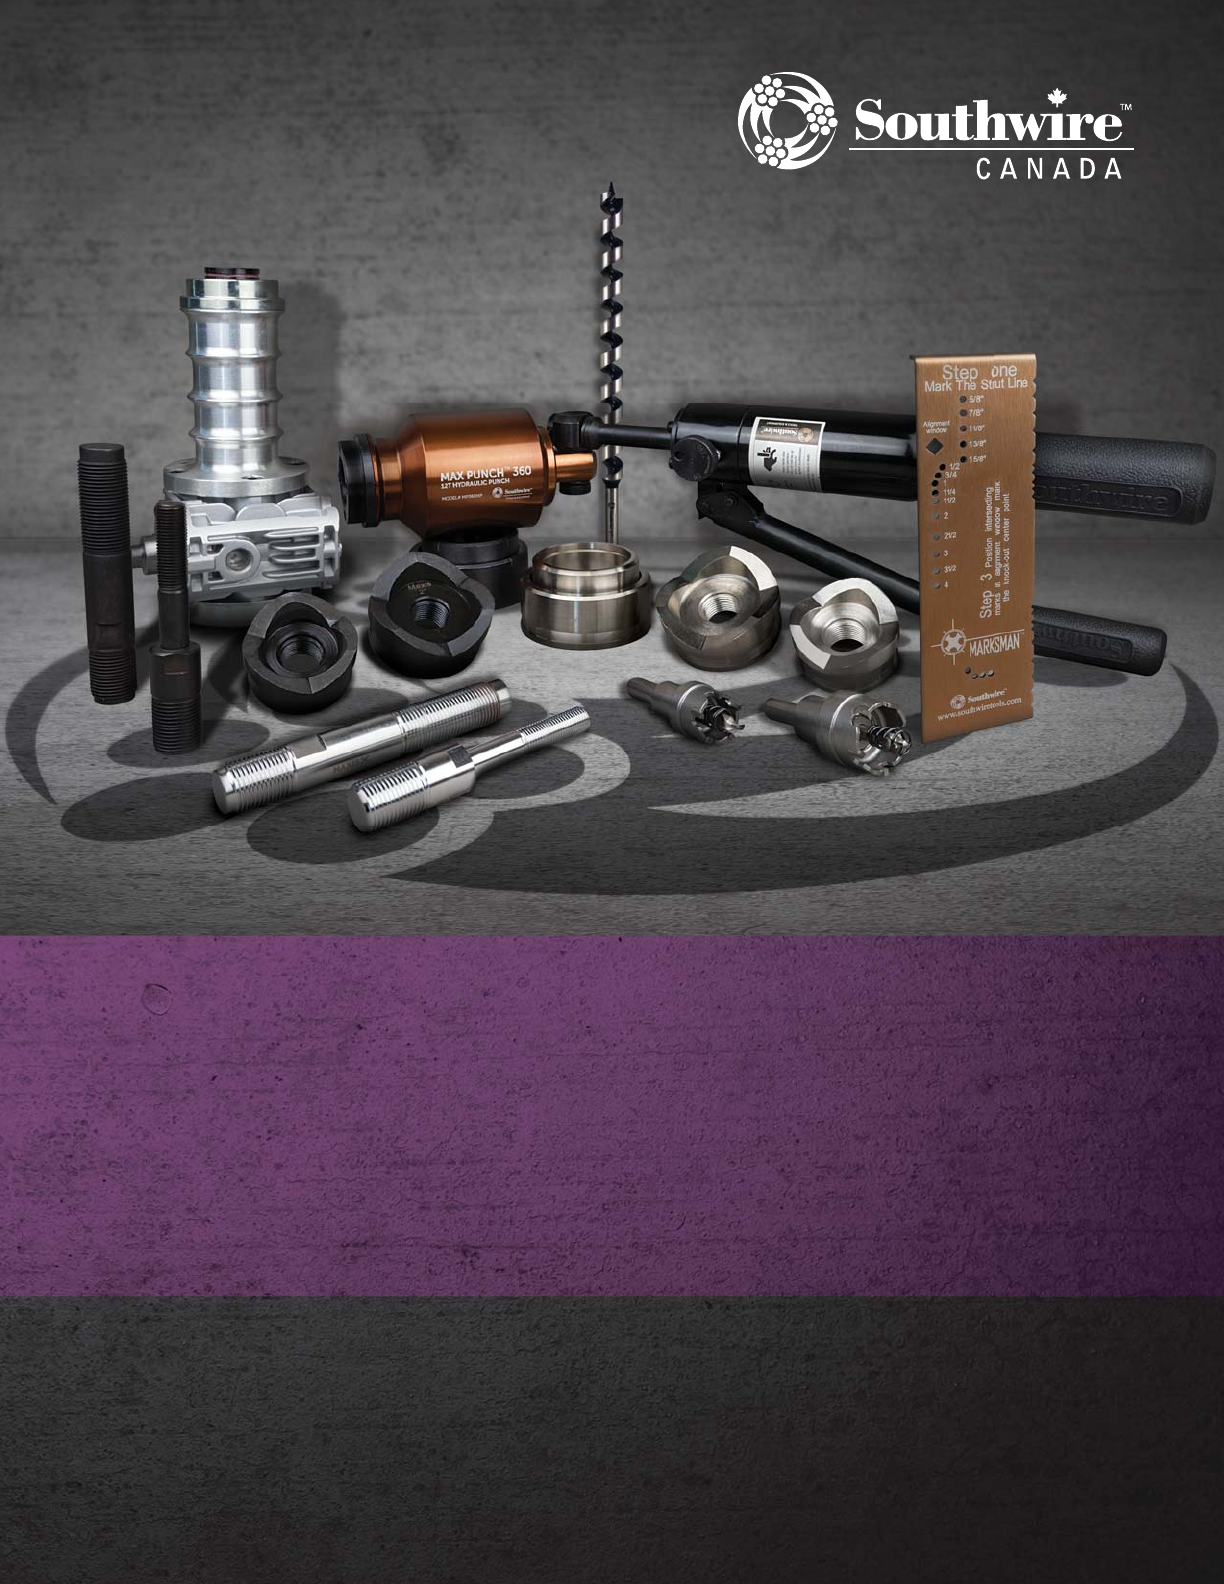 SWC 5 Hole Making Tools Catalogue Extended Bleed 1000389009 Catalog